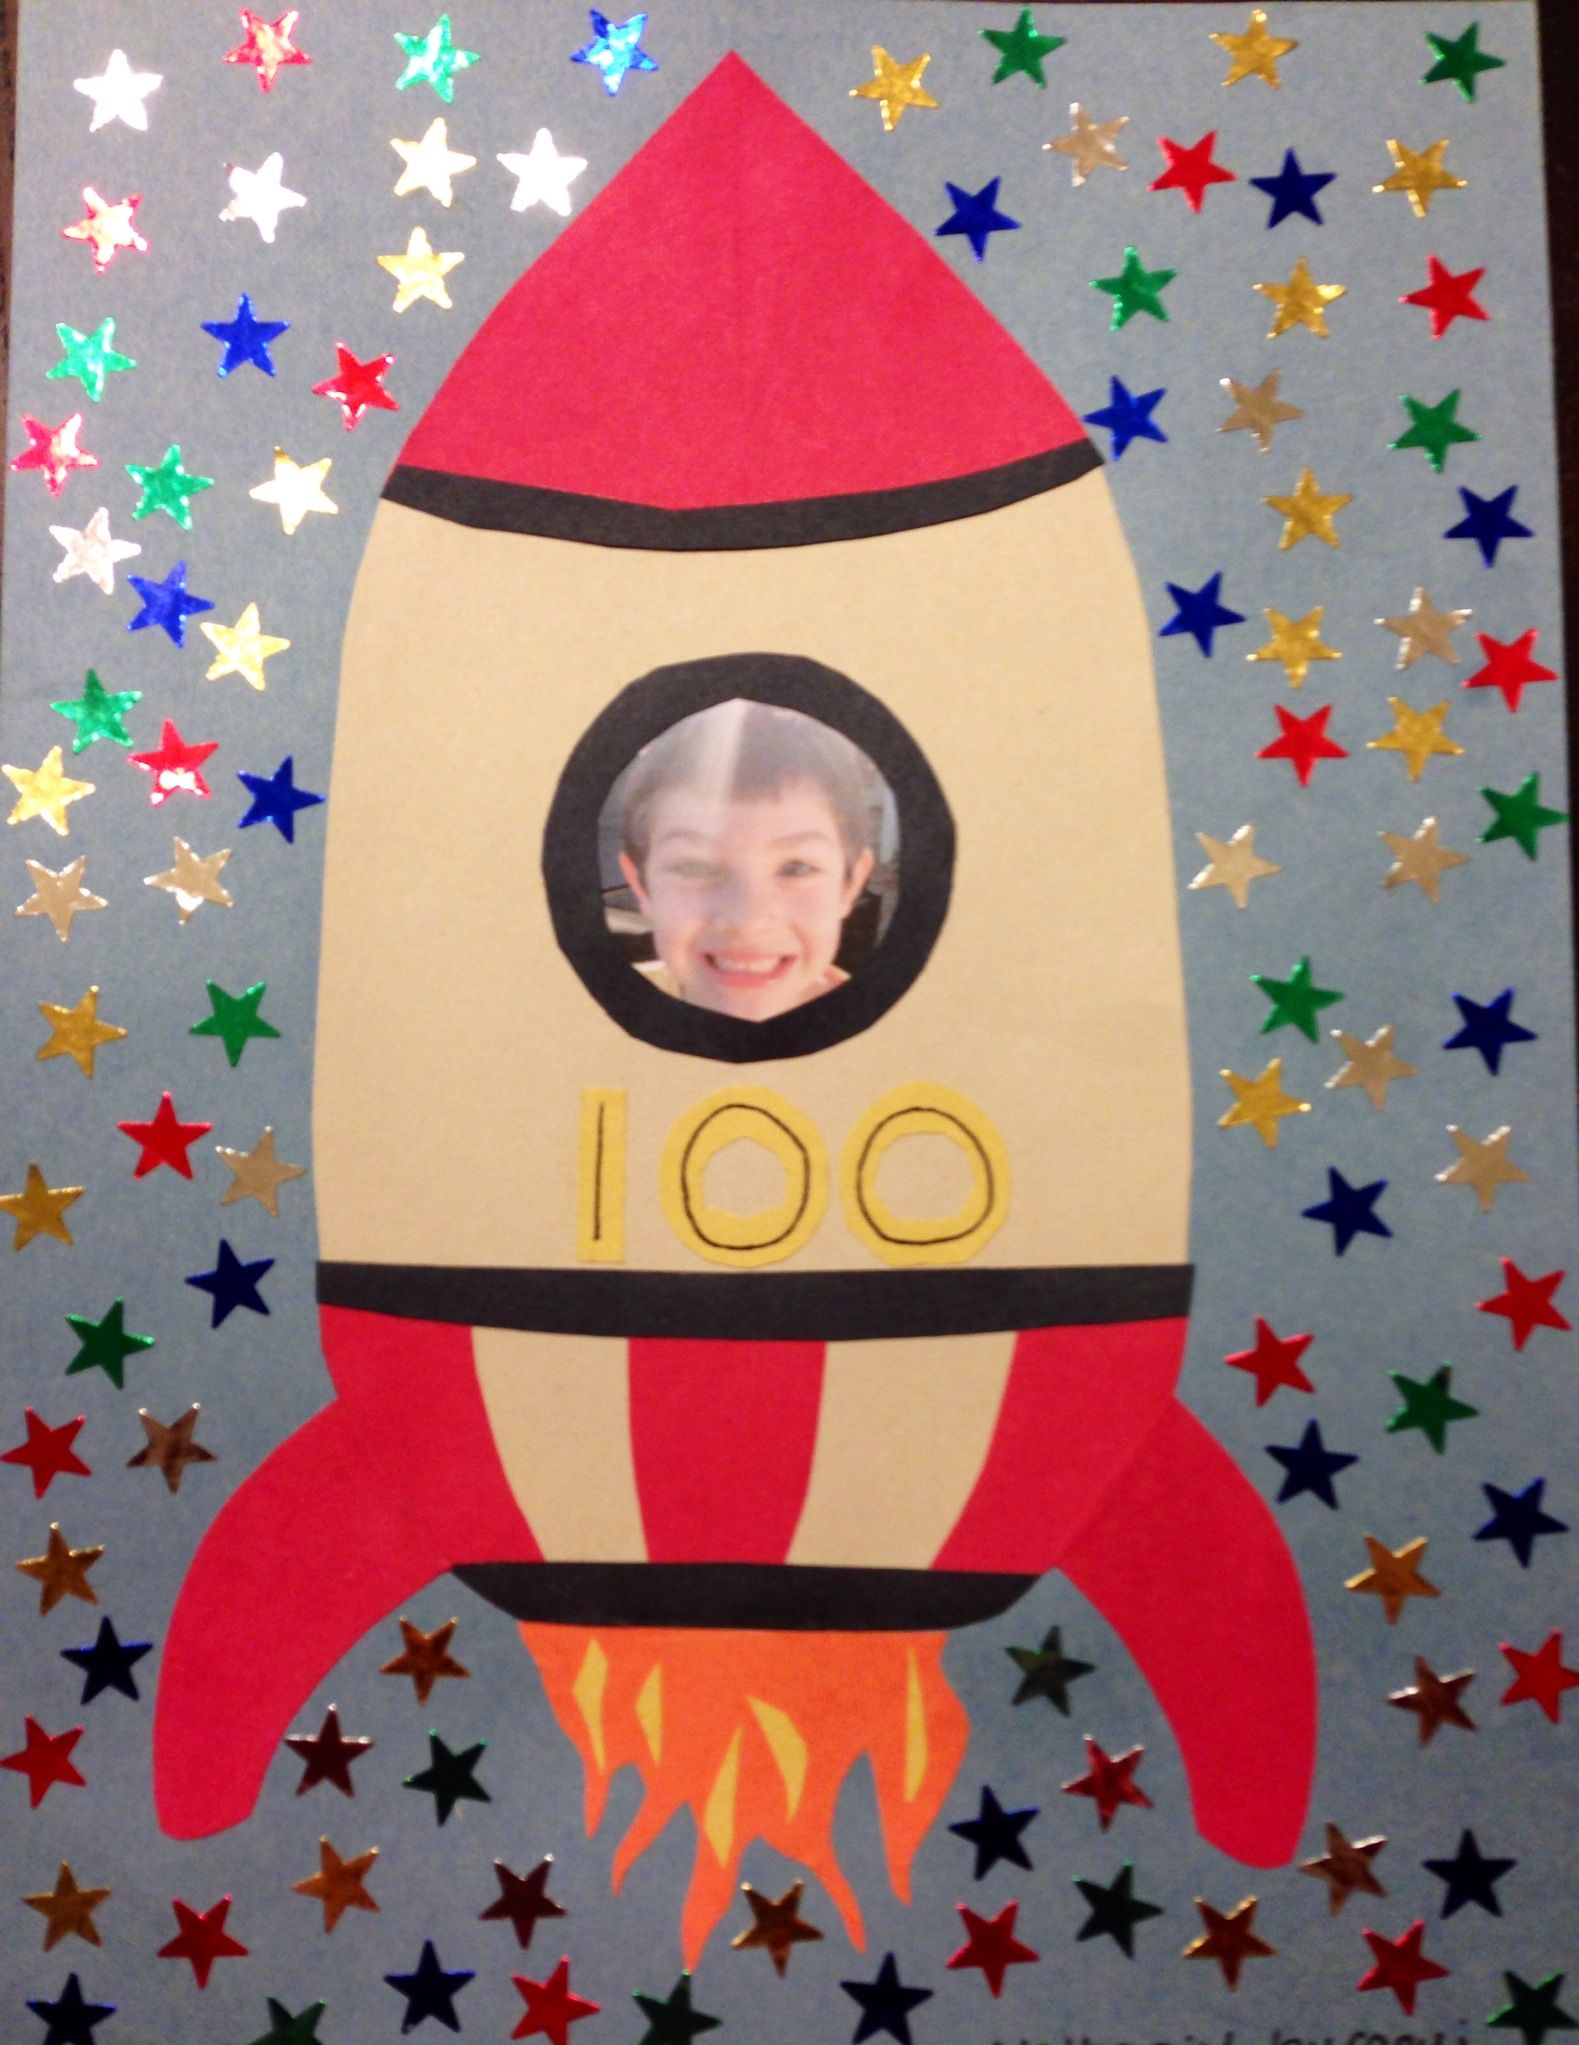 Nate S 100th Day Of School Project